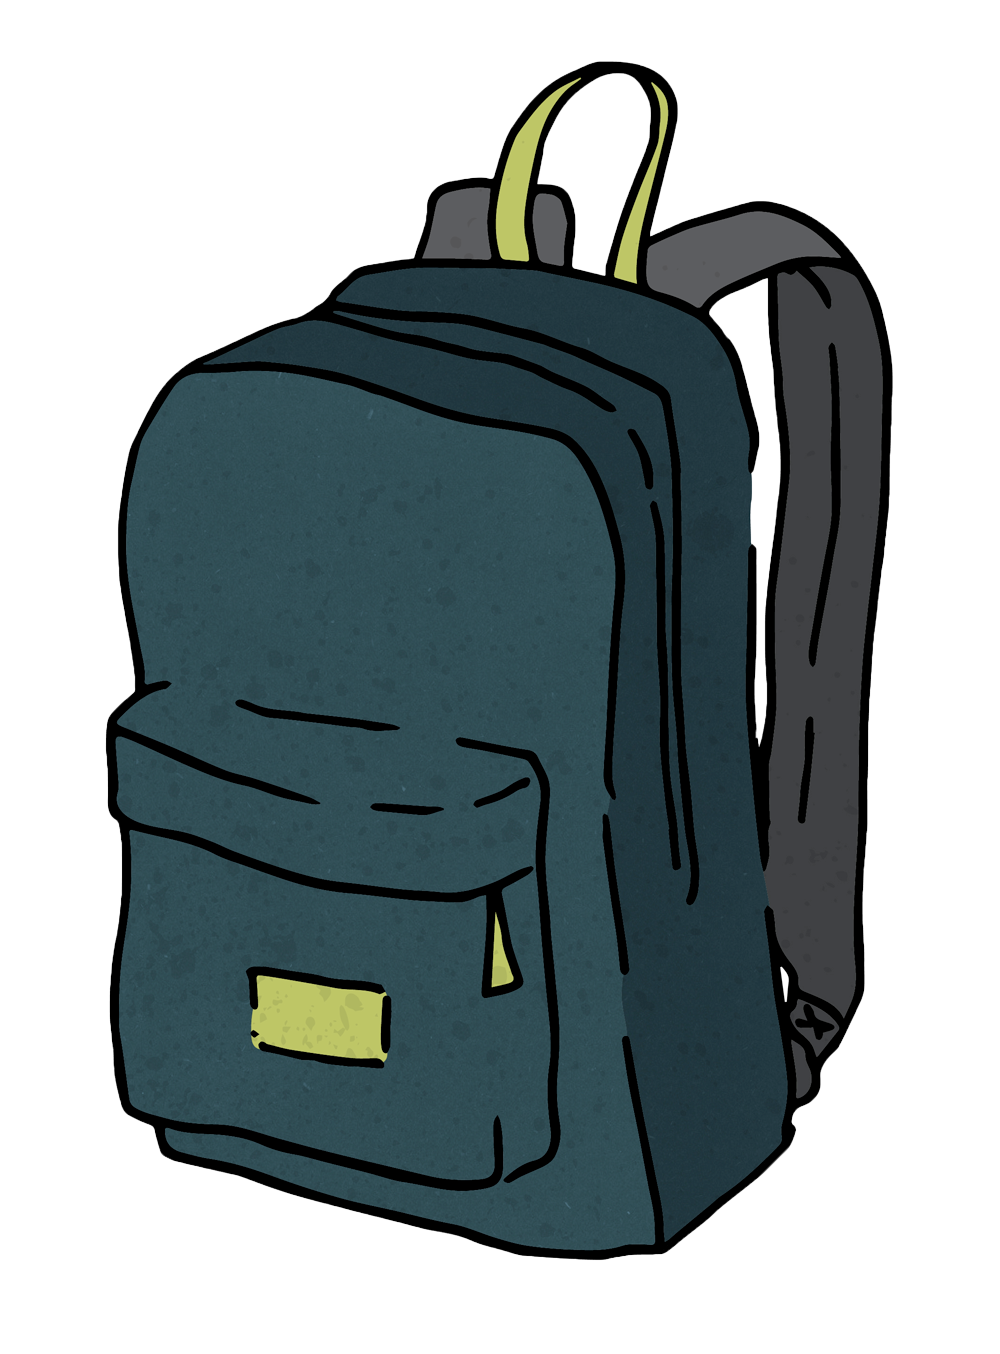 Cartoon backpack png. The evolution of an